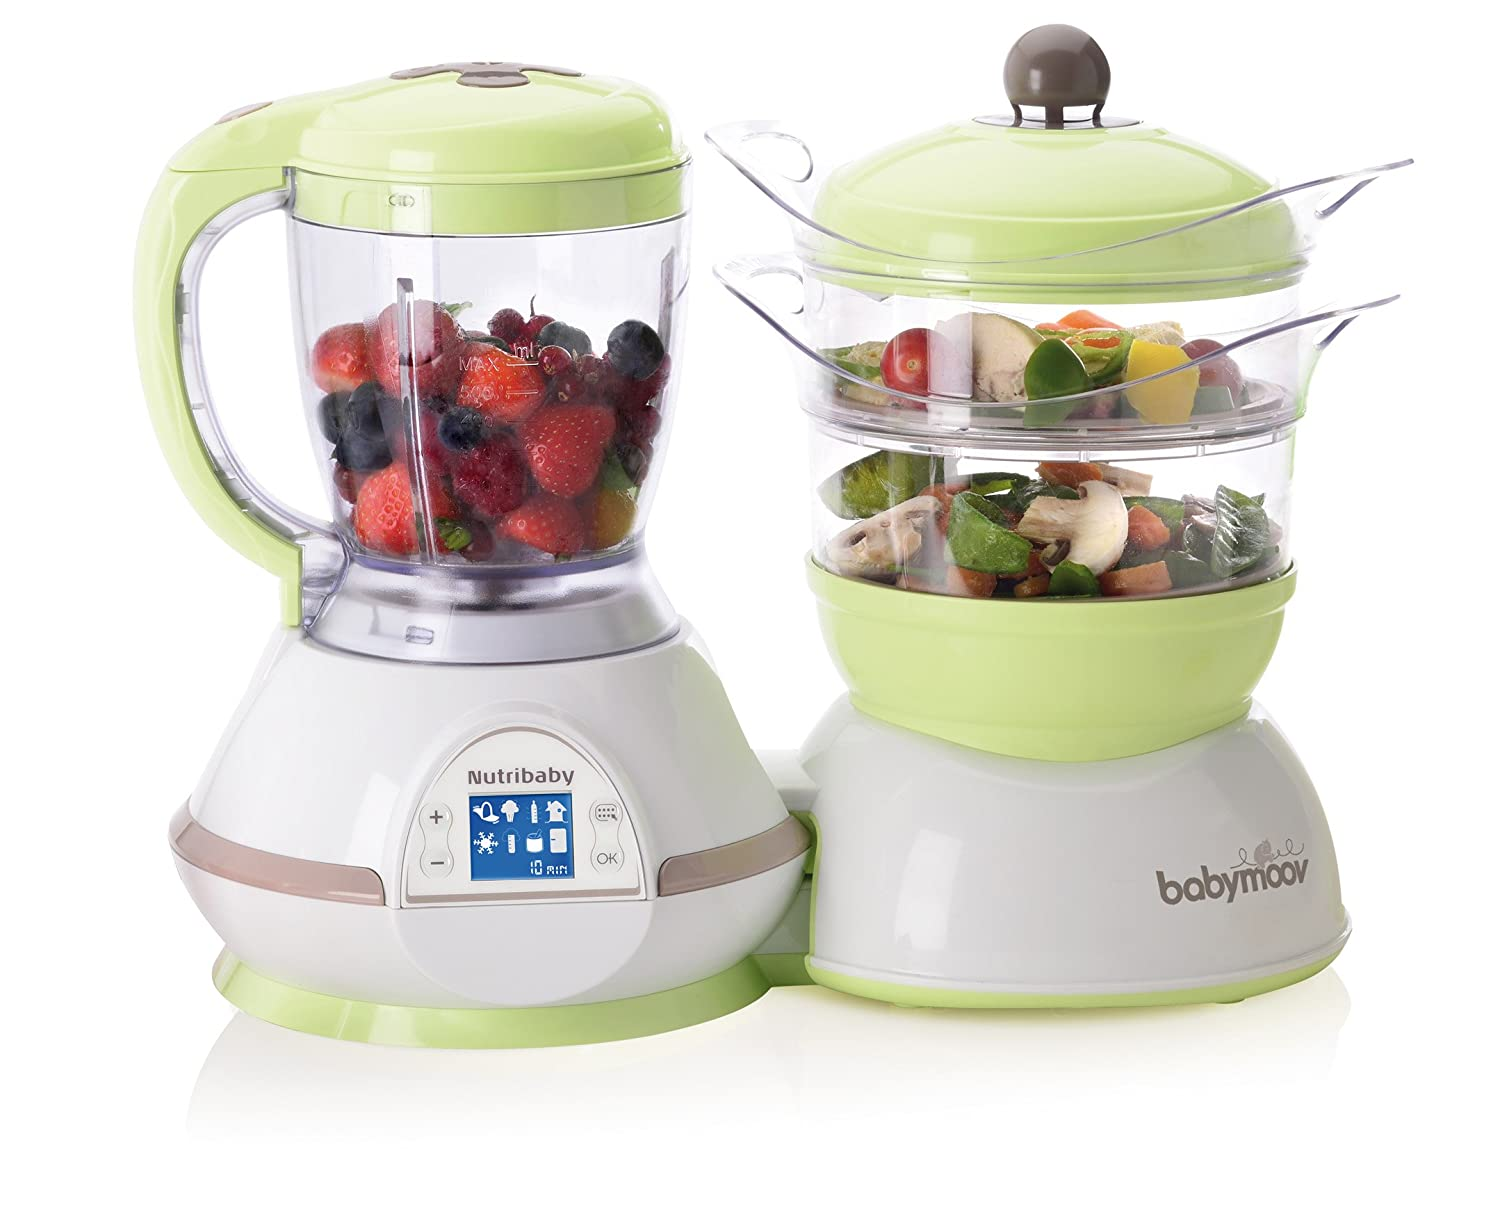 Babymoov Duo Meal Station | 5 in 1 Food Processor with Steam Cooker, Multi-Speed Blender, Baby Purees, Warmer, Defroster, Sterilizer ALT GROUP BABYMOOV CORP A001125